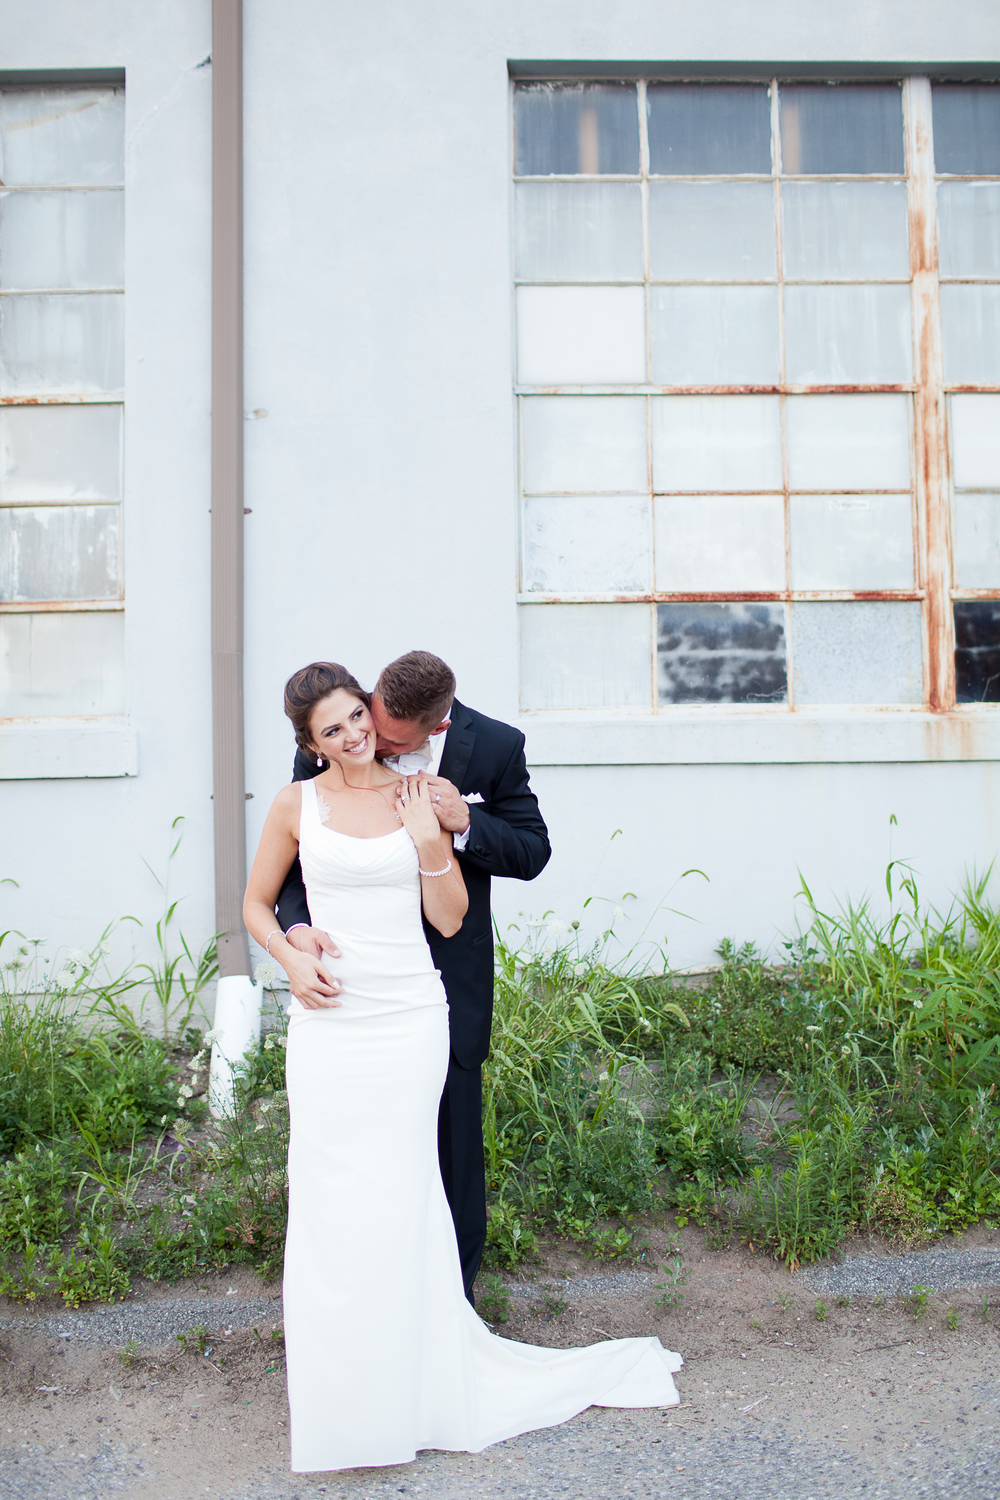 Melissa Kruse Photography - Genna + Anthony The Loading Dock Stamford CT Wedding-781.jpg